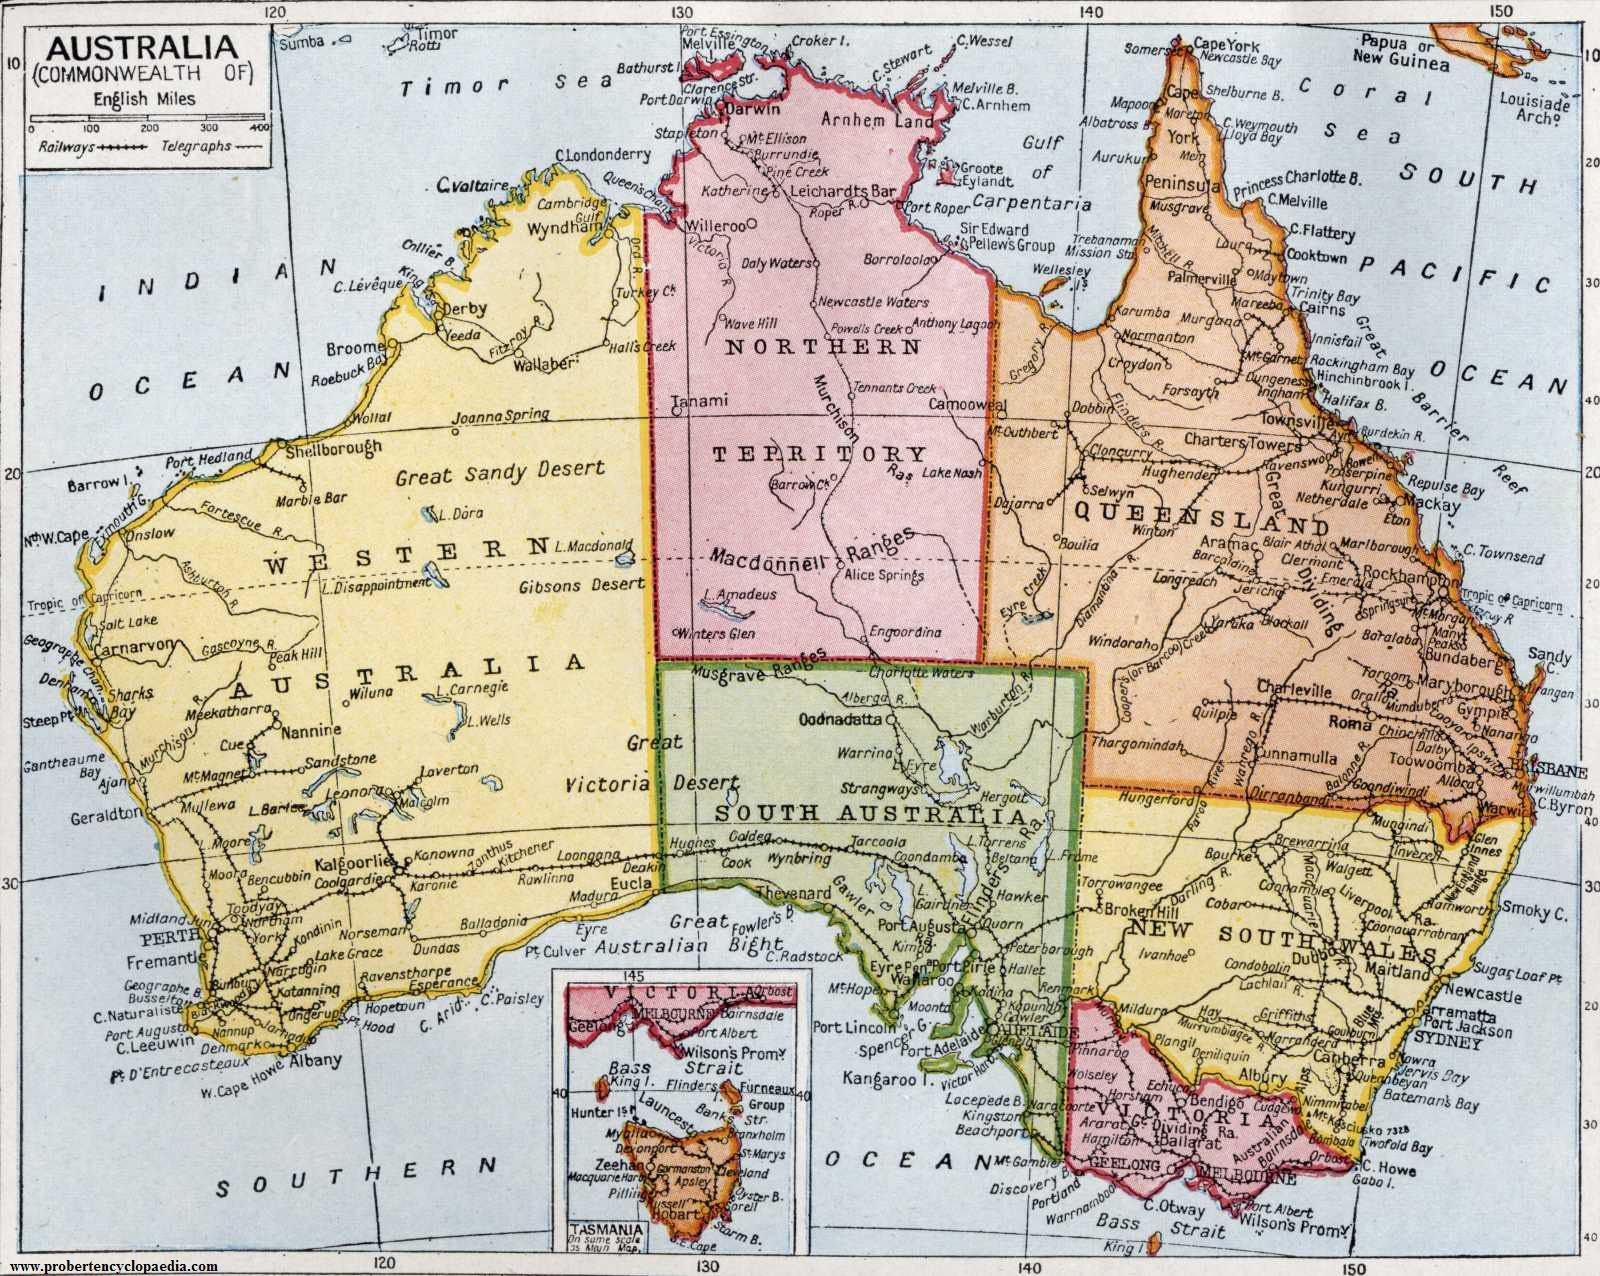 Road Map Of Australia Australia Pinterest Australia And - Australian road maps free